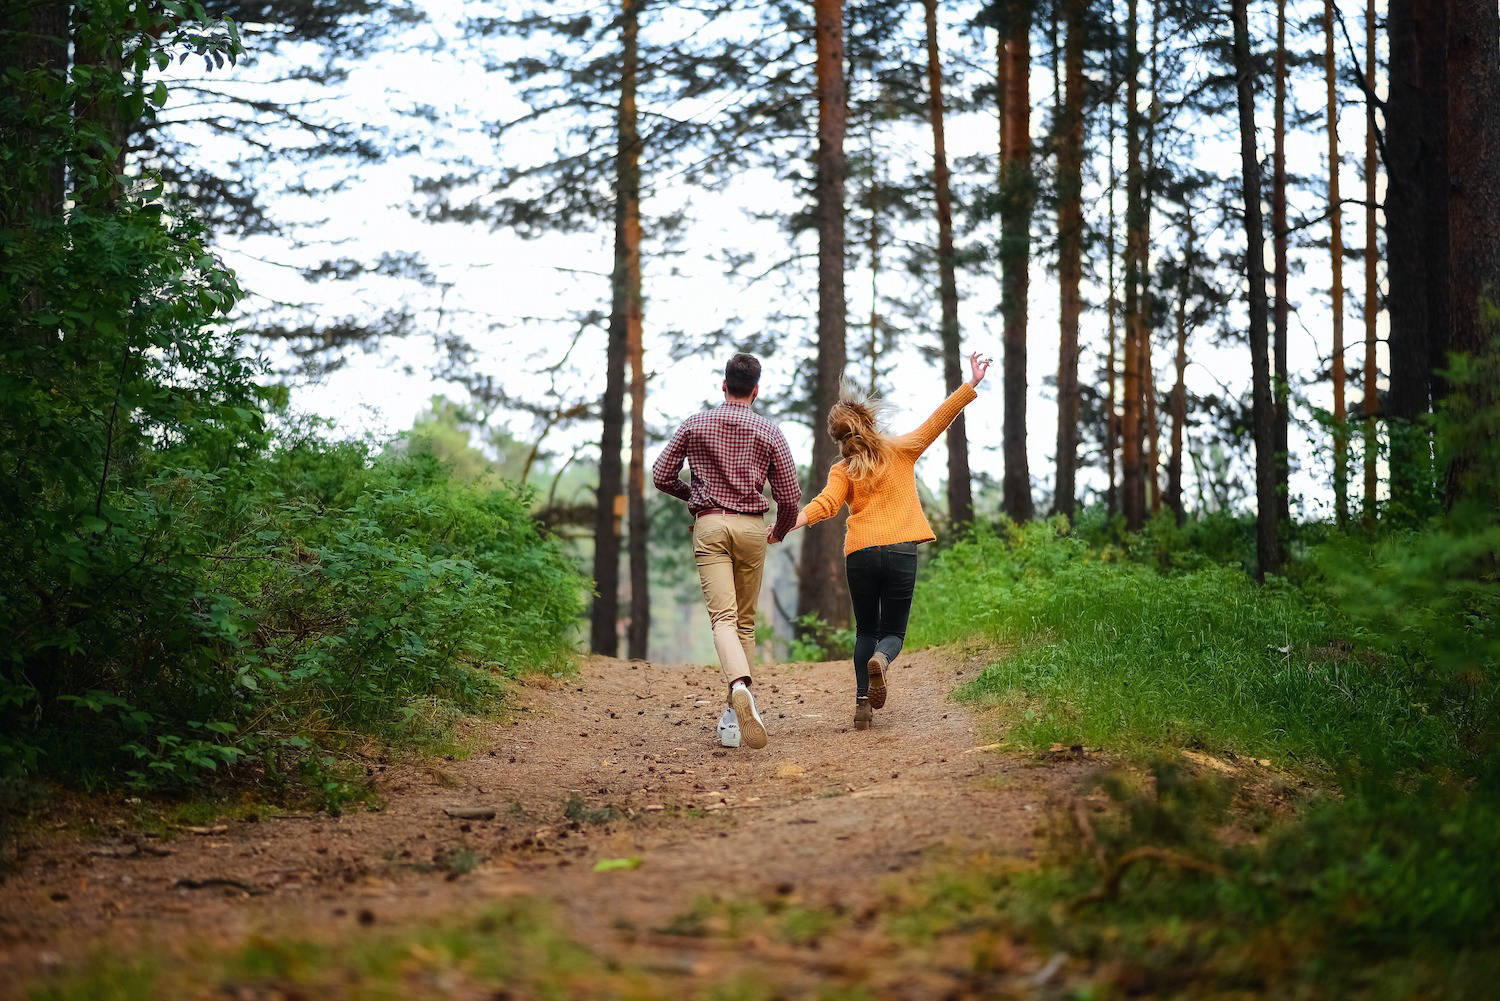 Couple skipping through a forest